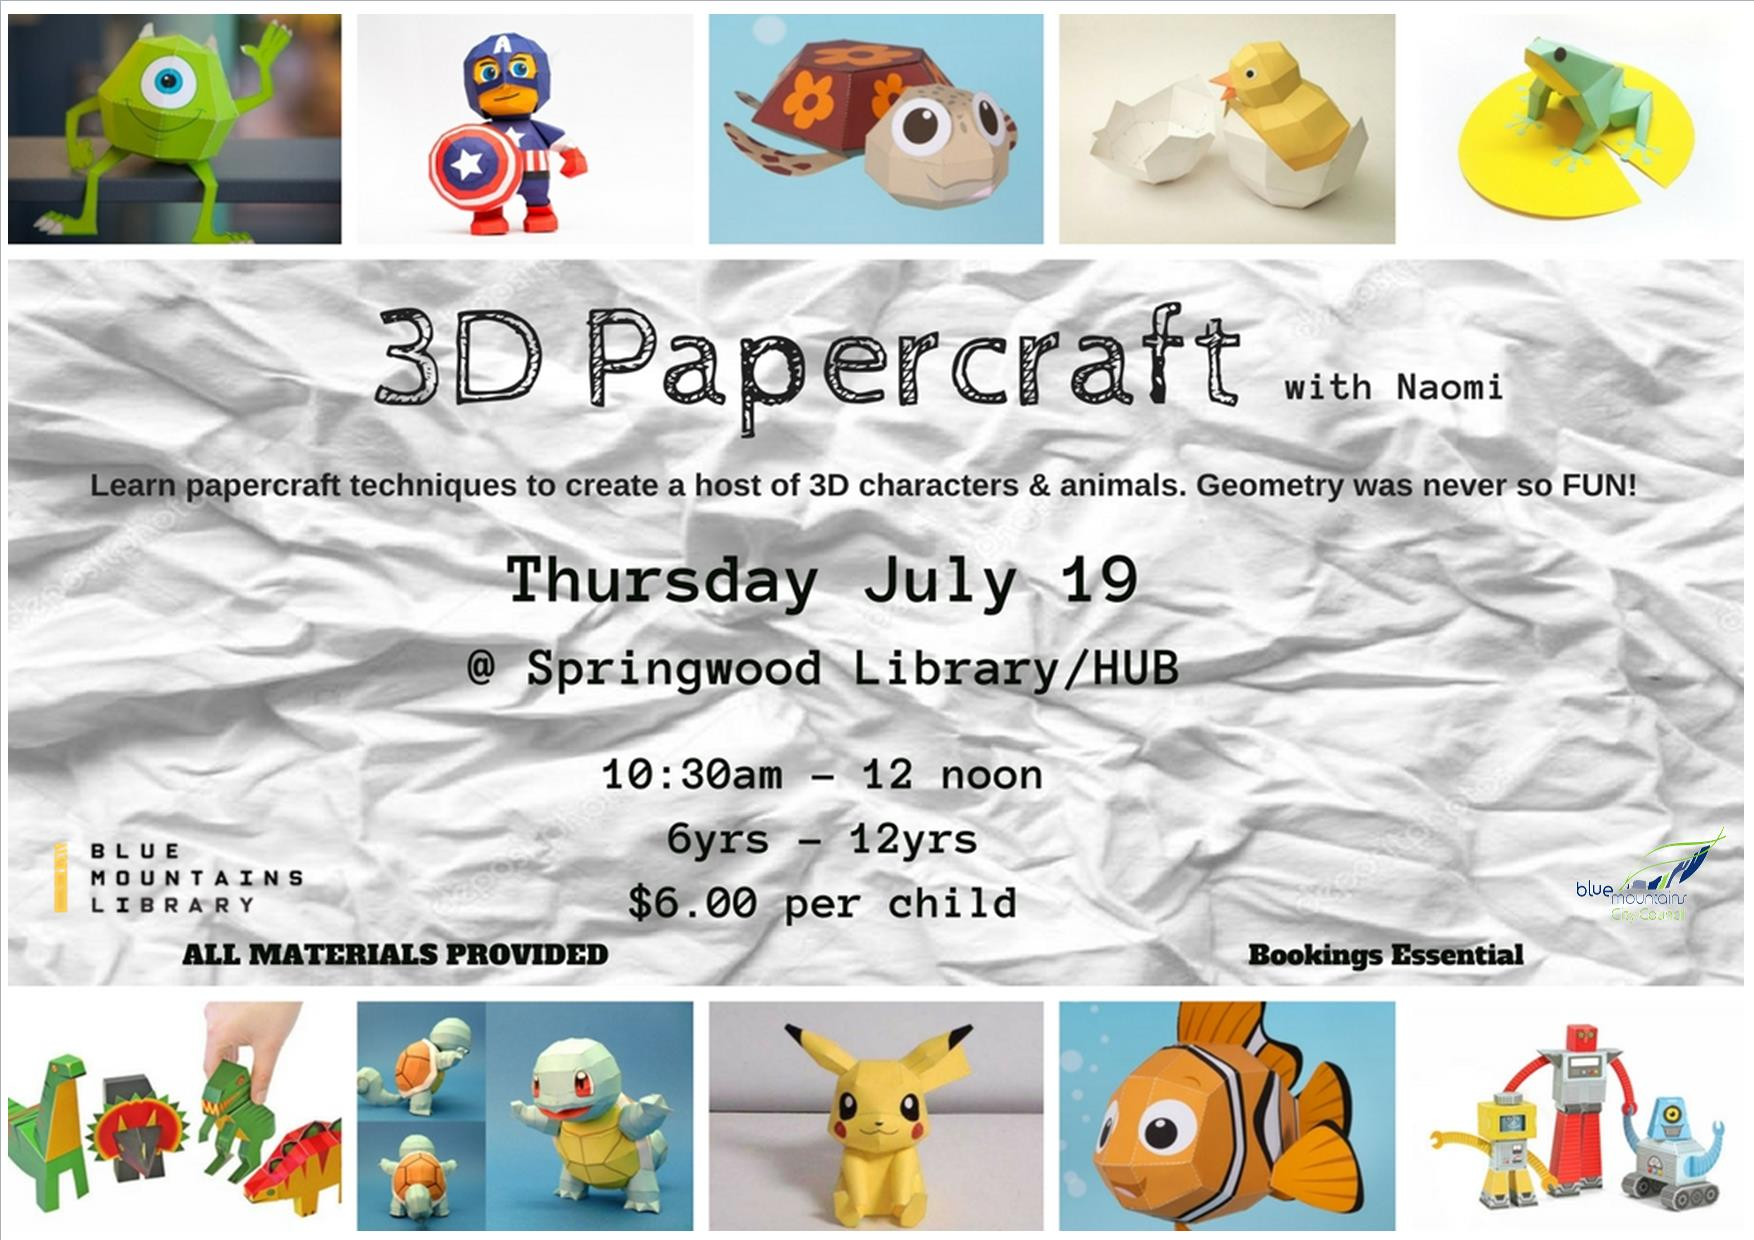 3D Papercraft, Springwood Library, Thursday 19th July, 10:30-12noon, 6-12yrs, $6 per child